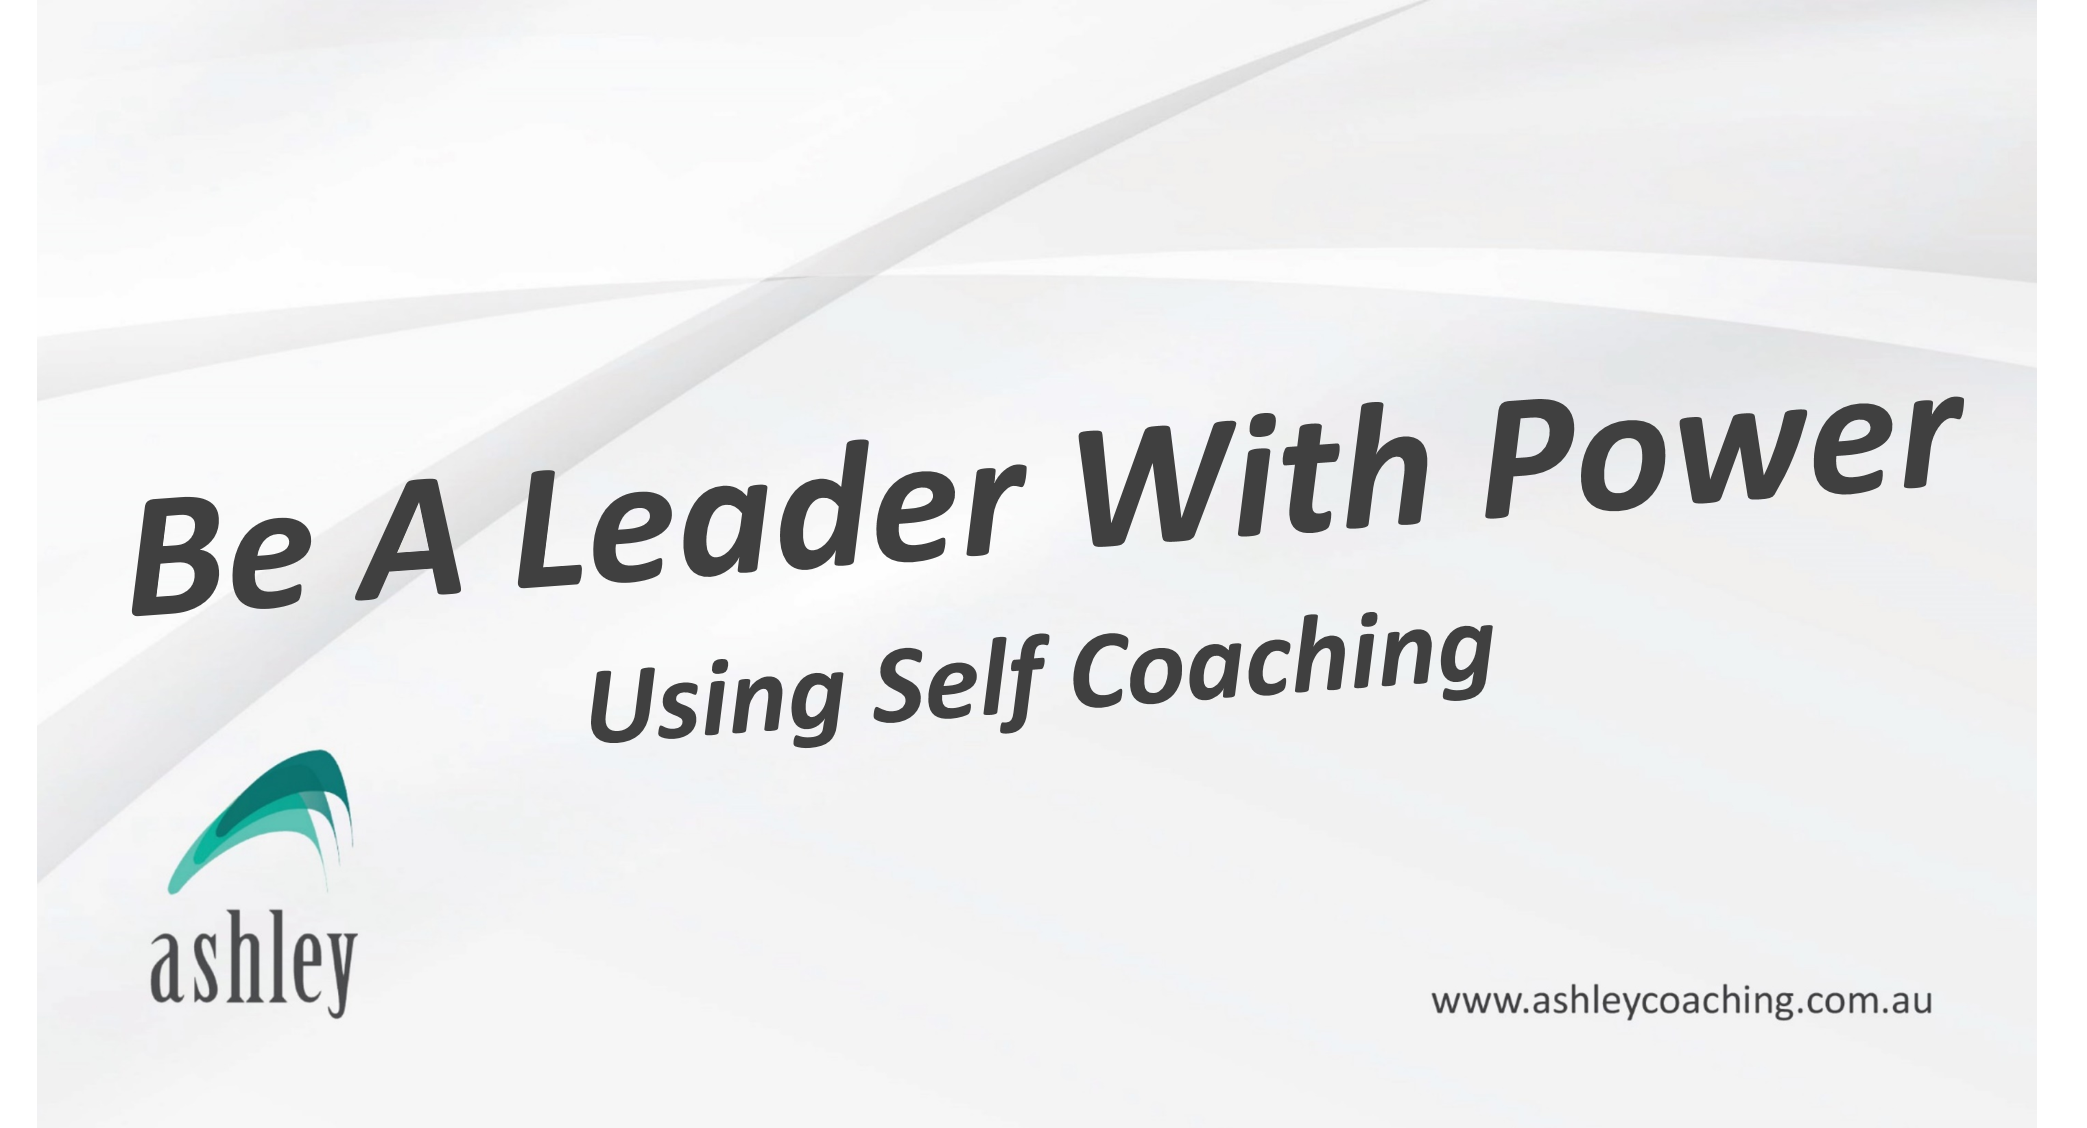 Be A Leader With Power - Using Self Coaching